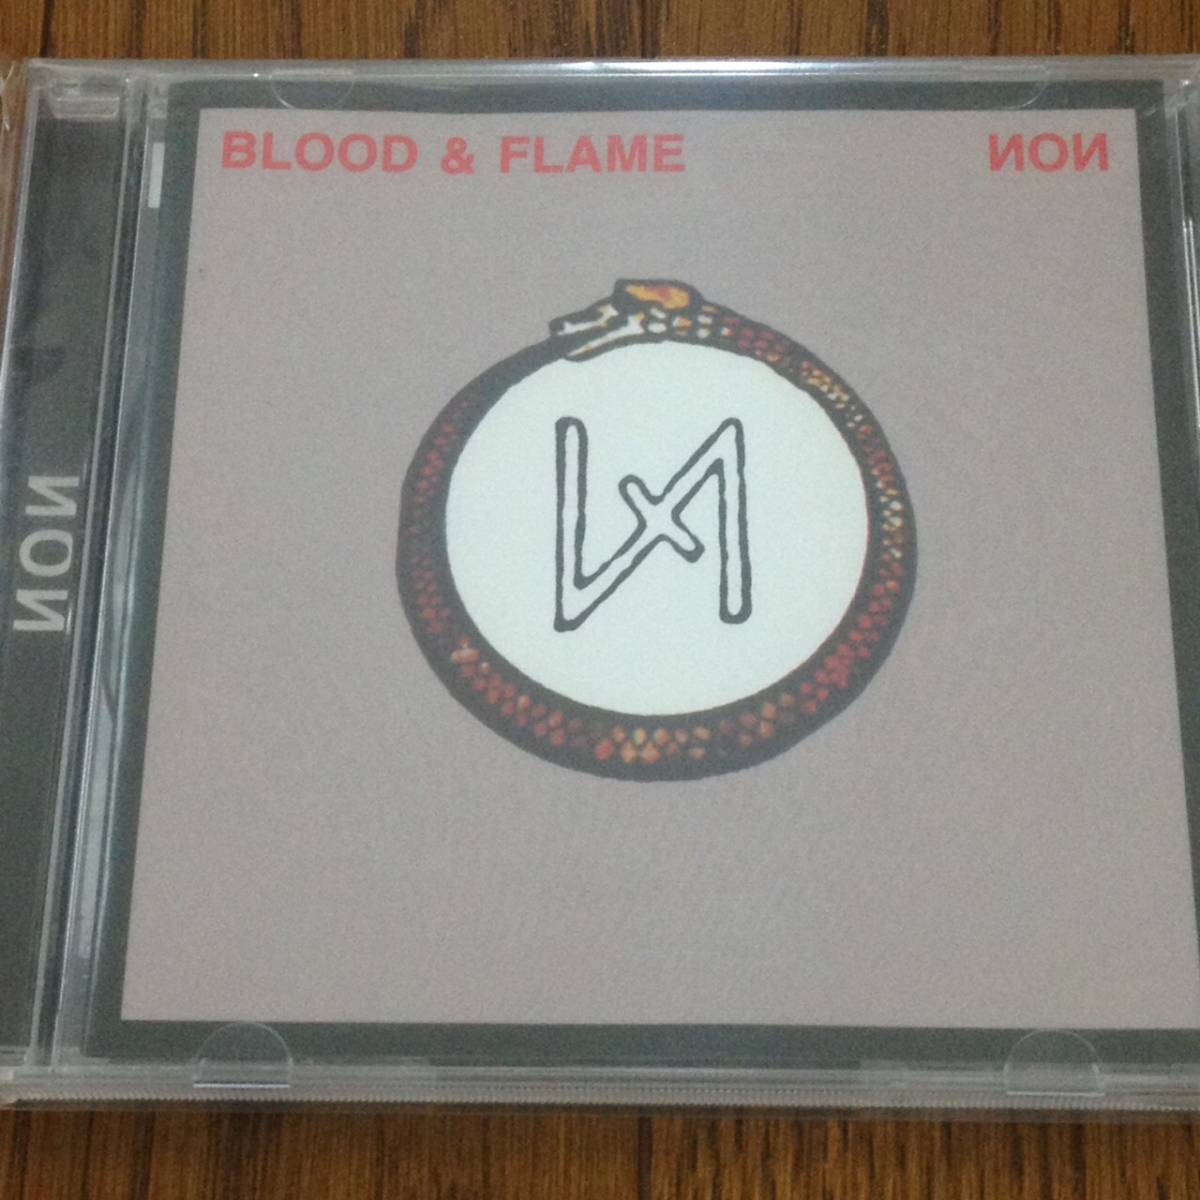 『NON / Blood & Flame』CD 送料無料Boyd Rice, Death in June, Current 93, Psychic TV